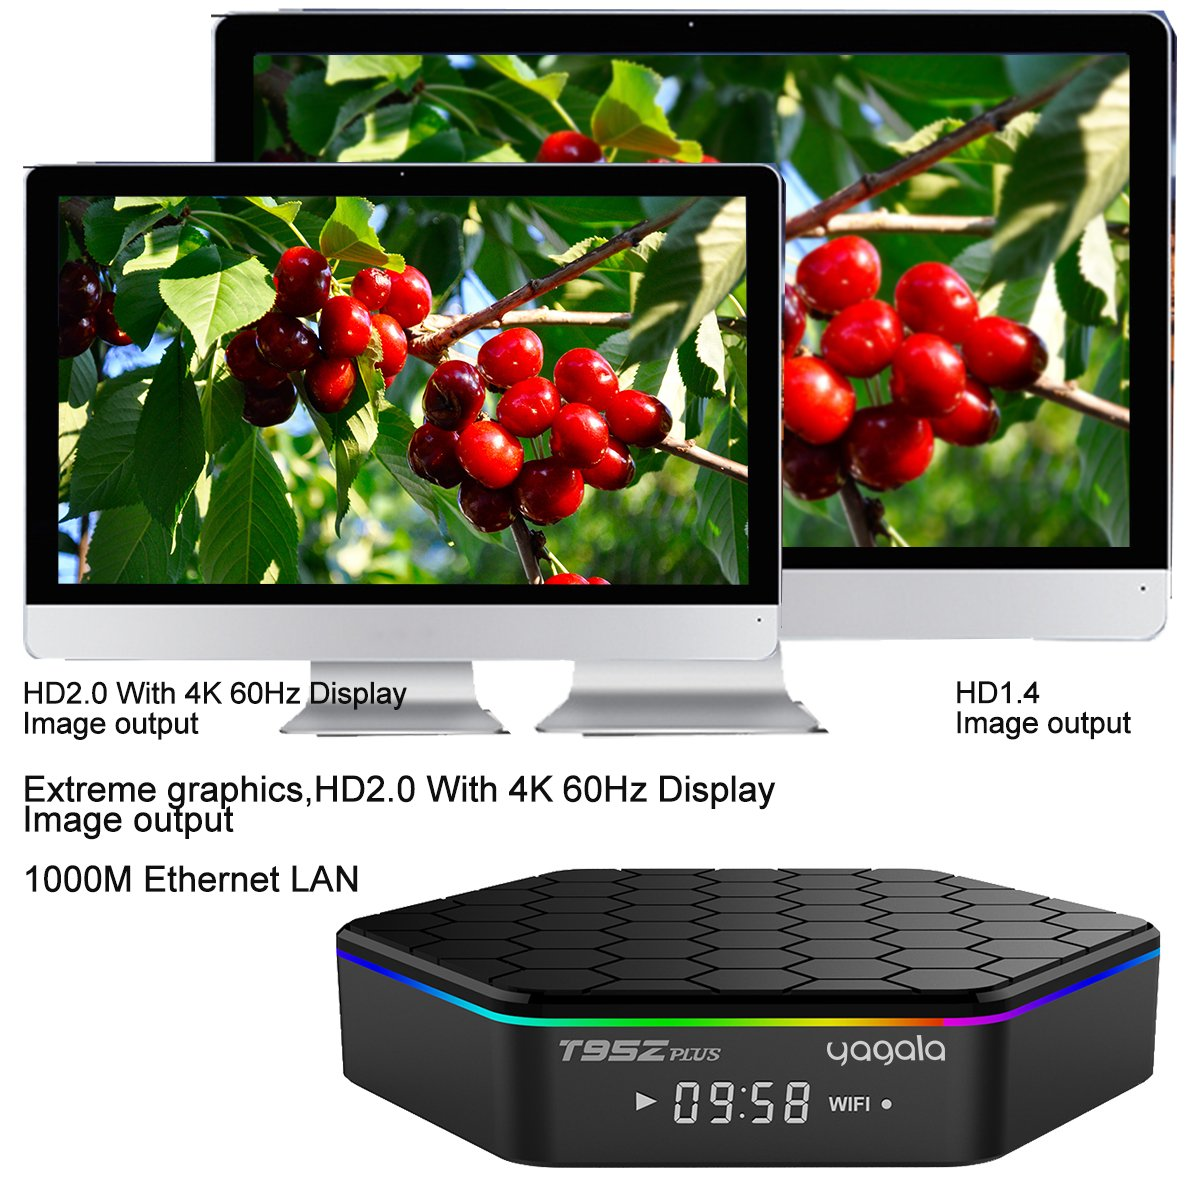 YAGALA T95Z Plus Android 7.1 TV Box Amlogic S912 Octa Core 3GB/32GB Dual Band WiFi 2.4GHz/5.0GHz 4K HD TV Box with Backlit Mini Wireless Keyboard by YAGALA (Image #3)